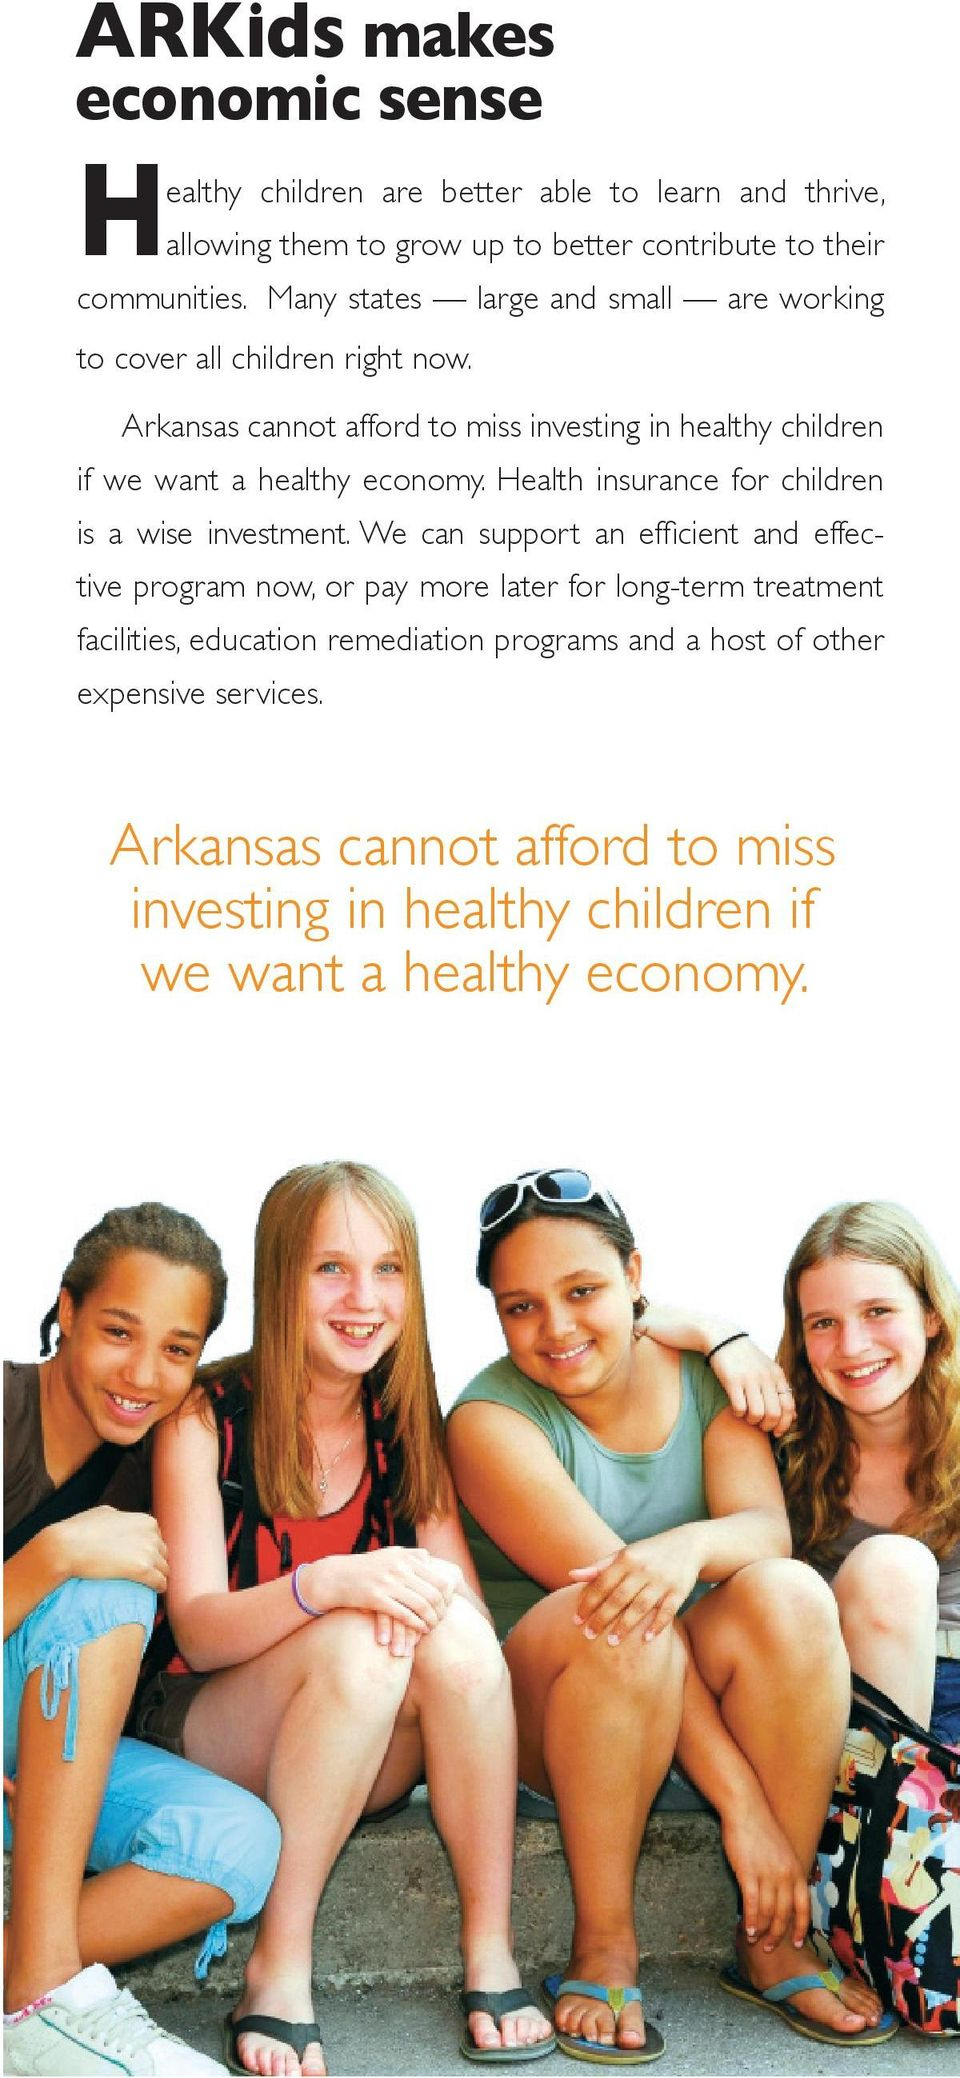 Arkansas cannot afford to miss investing in healthy children if we want a healthy economy. Health insurance for children is a wise investment.